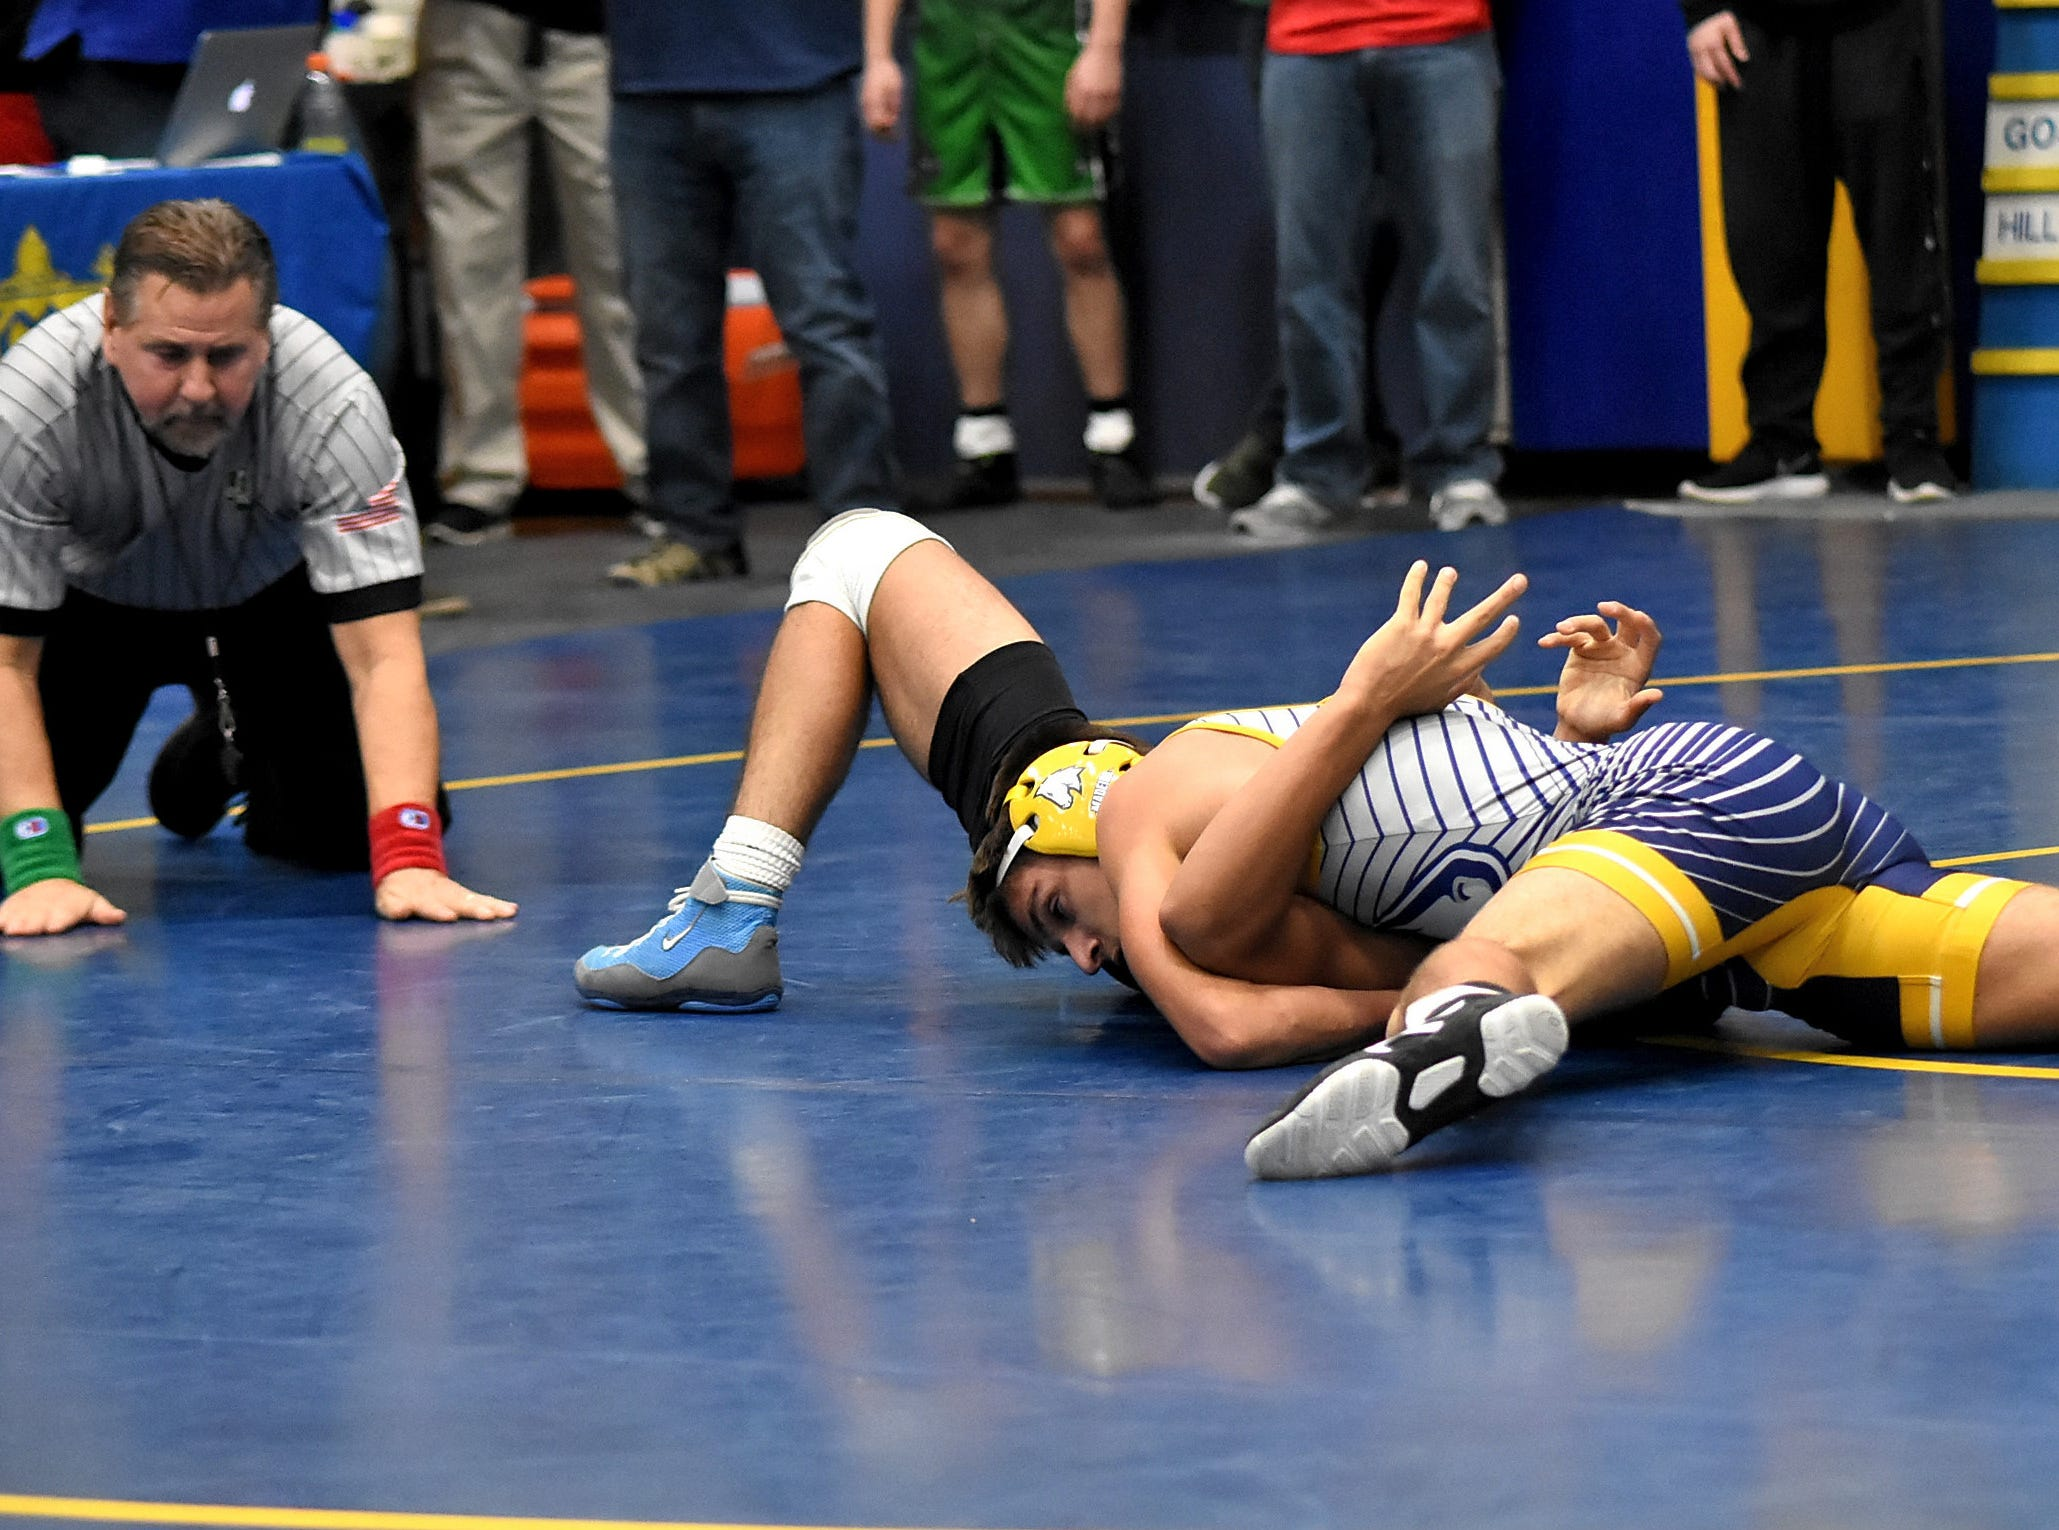 Madeira's Curtis Flores scores a first-round pinfall in the 138 lbs. class at the Bob Kearns Madeira Invitational, January 4, 2019.